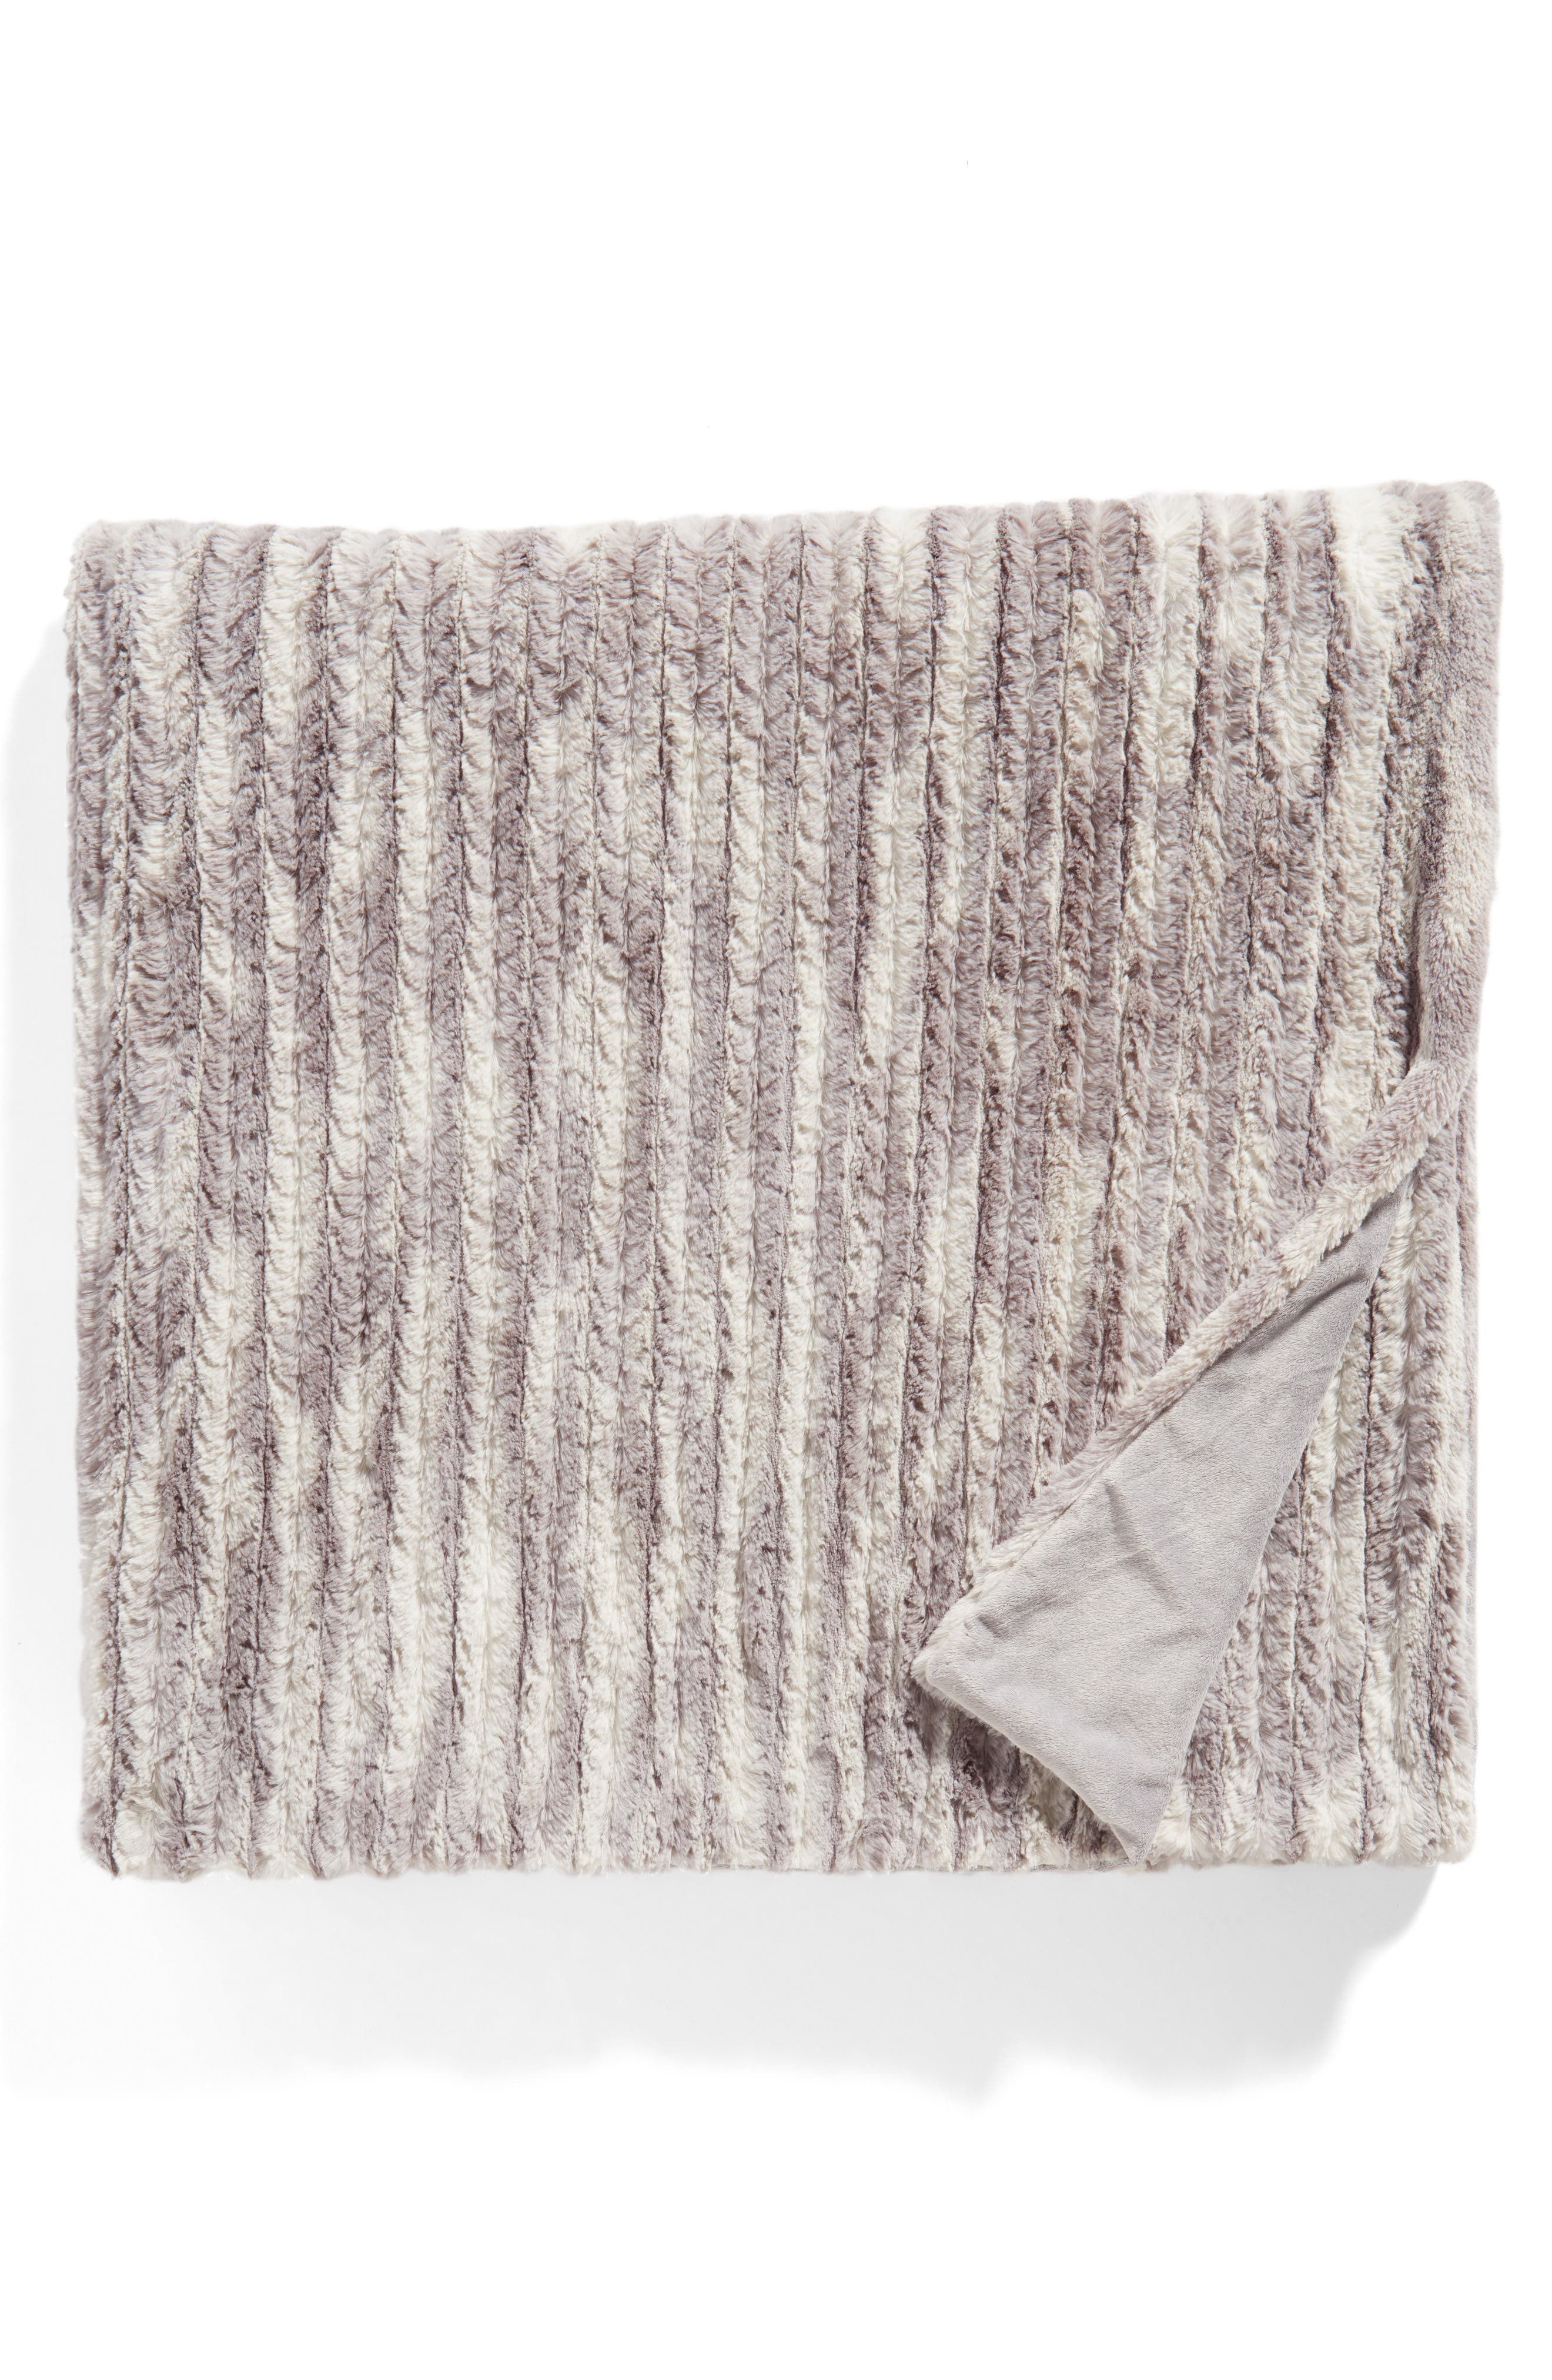 Alternate Image 1 Selected - Nordstrom Cozy Plush Faux Fur Blanket